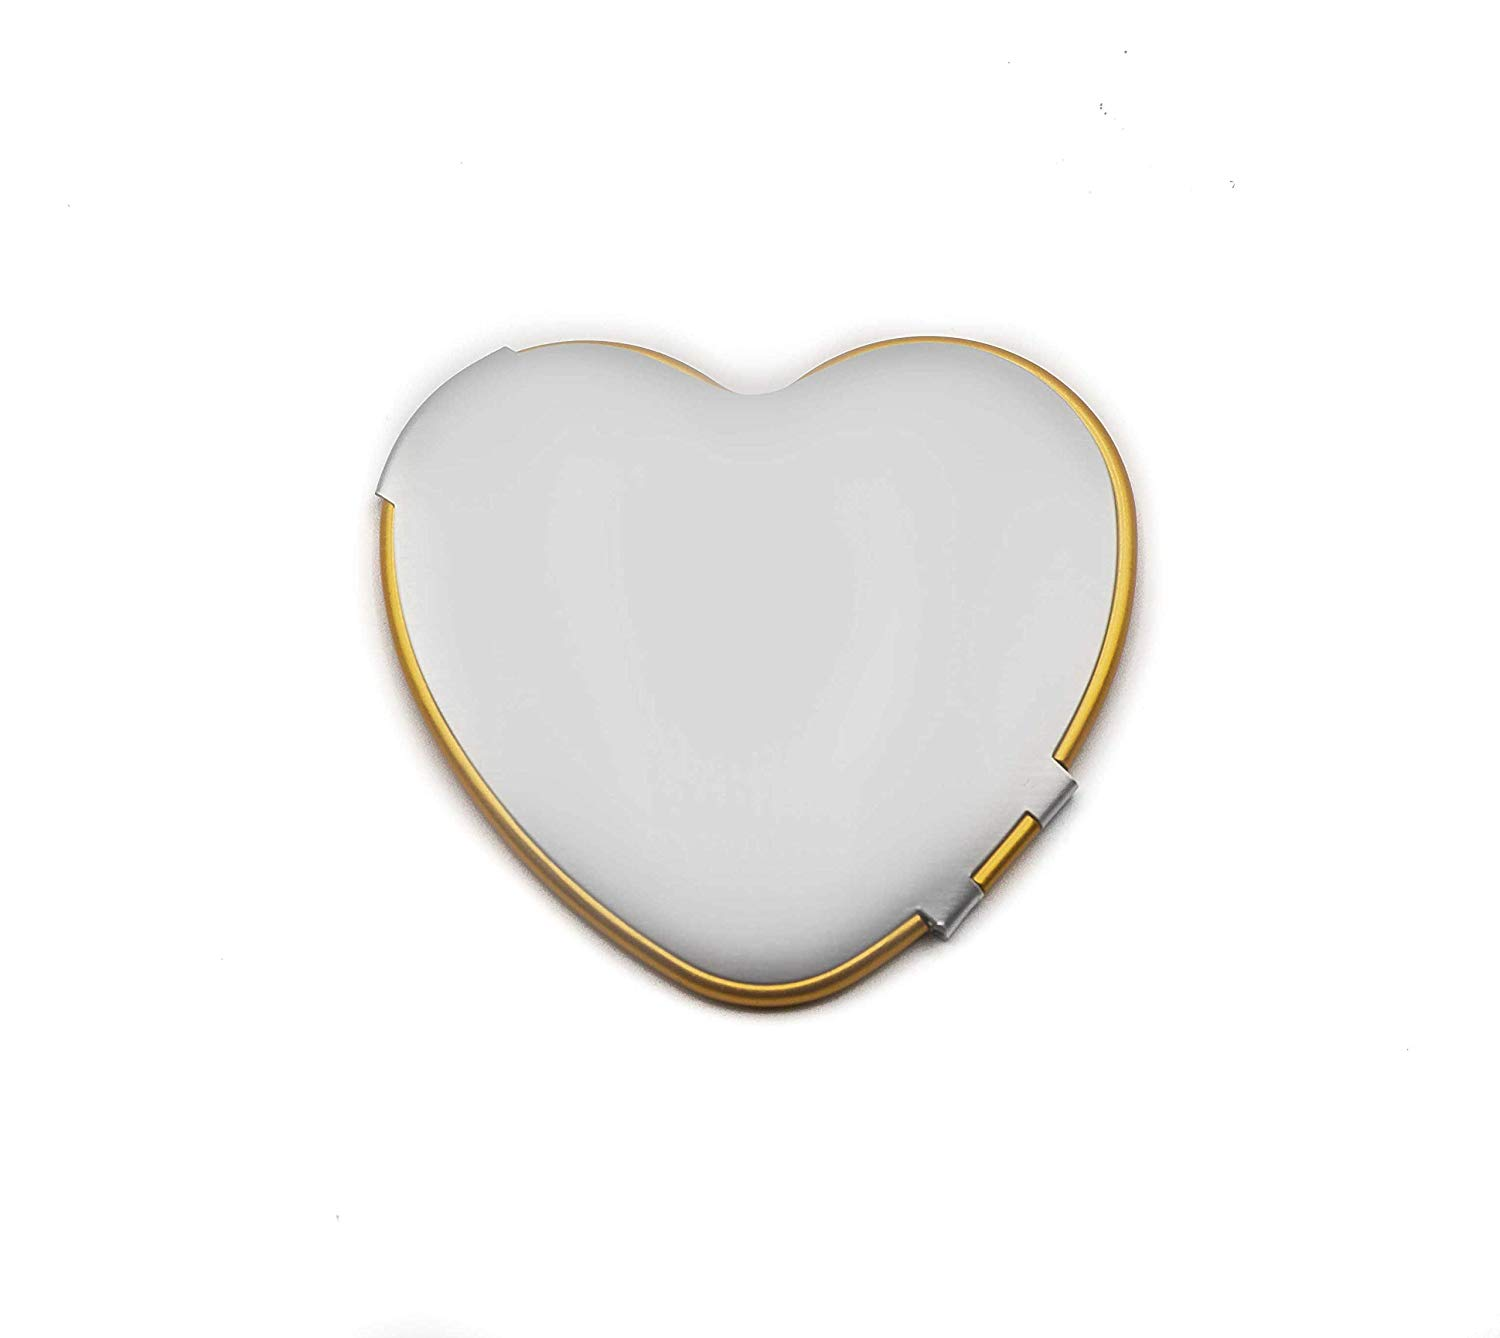 Ladies Pocket Mirror For Purse, Small Elegant Collectible Compact Mirrors - Perfect for Travel - 1x Trueview Vintage Handheld Makeup Mirror For All Your Personal Needs, Order Now! (Heart, Silver/Gold)